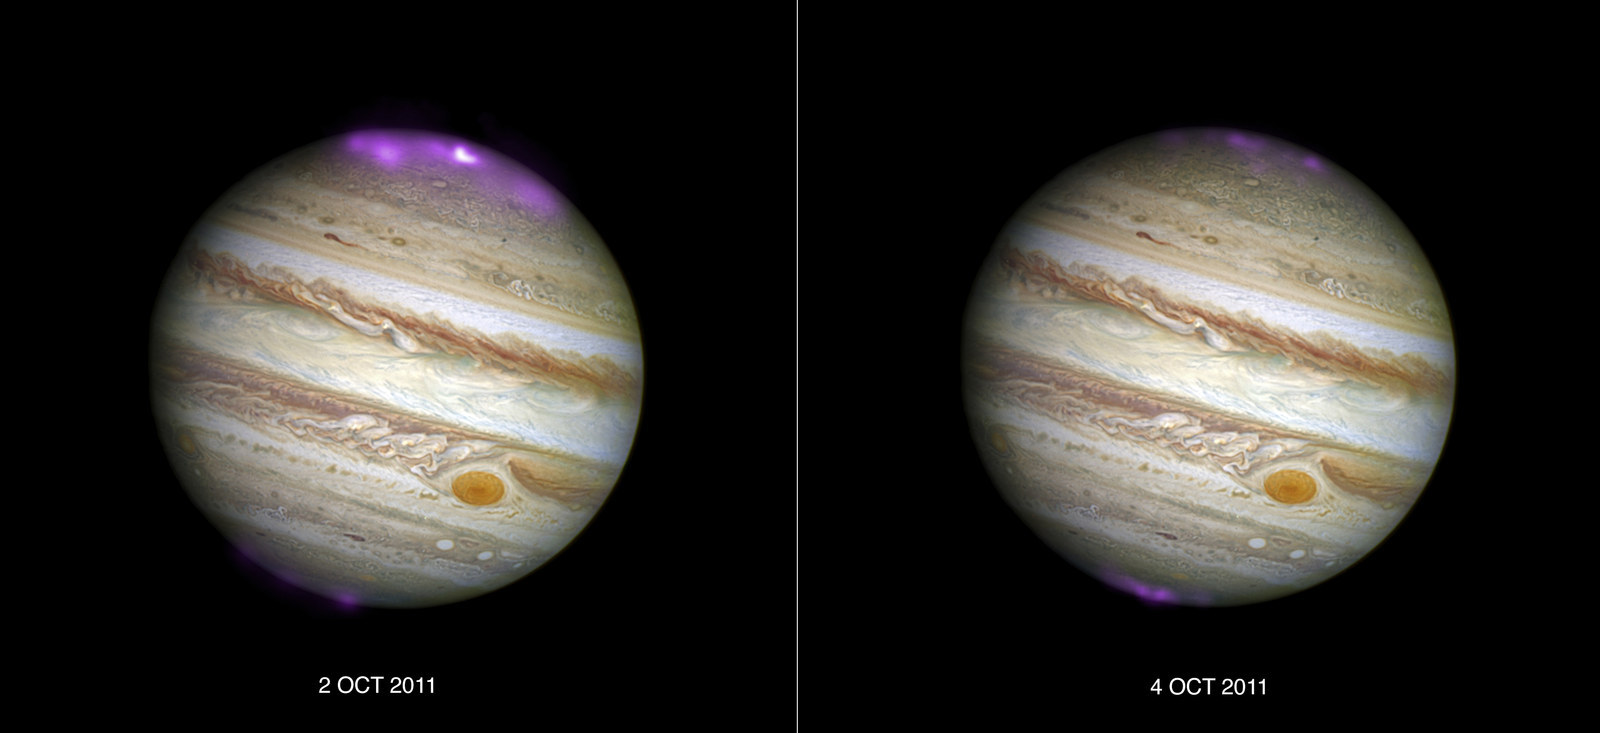 Astronomers pointed an X-ray telescope at Jupiter right at the moment a solar storm from the sun hit the planet, and this is what they saw: